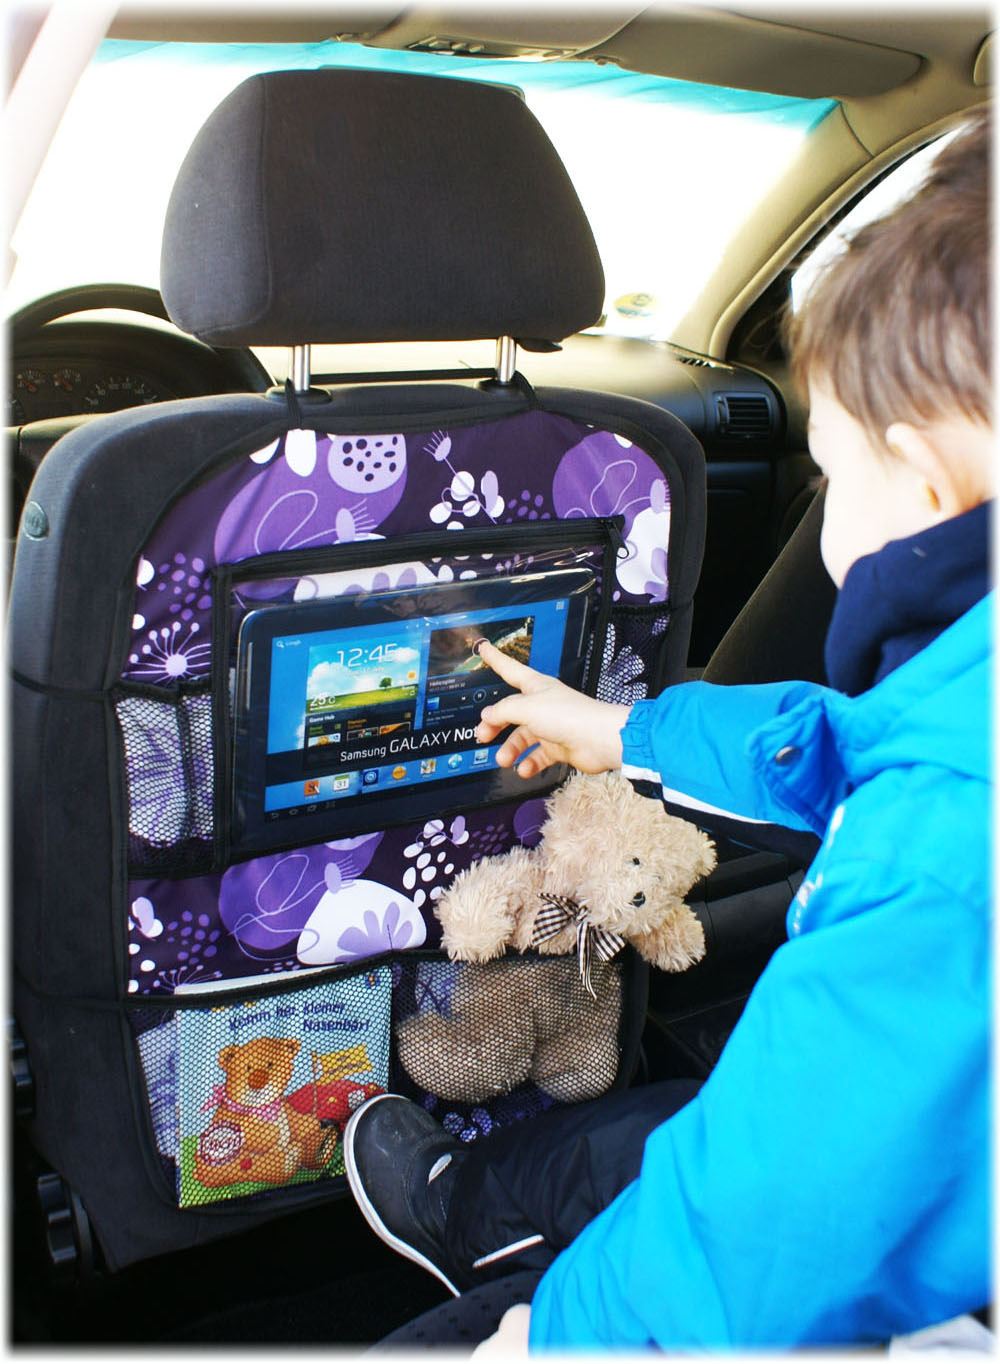 auto r cksitz tablet baby kinder ipad organizer tasche. Black Bedroom Furniture Sets. Home Design Ideas